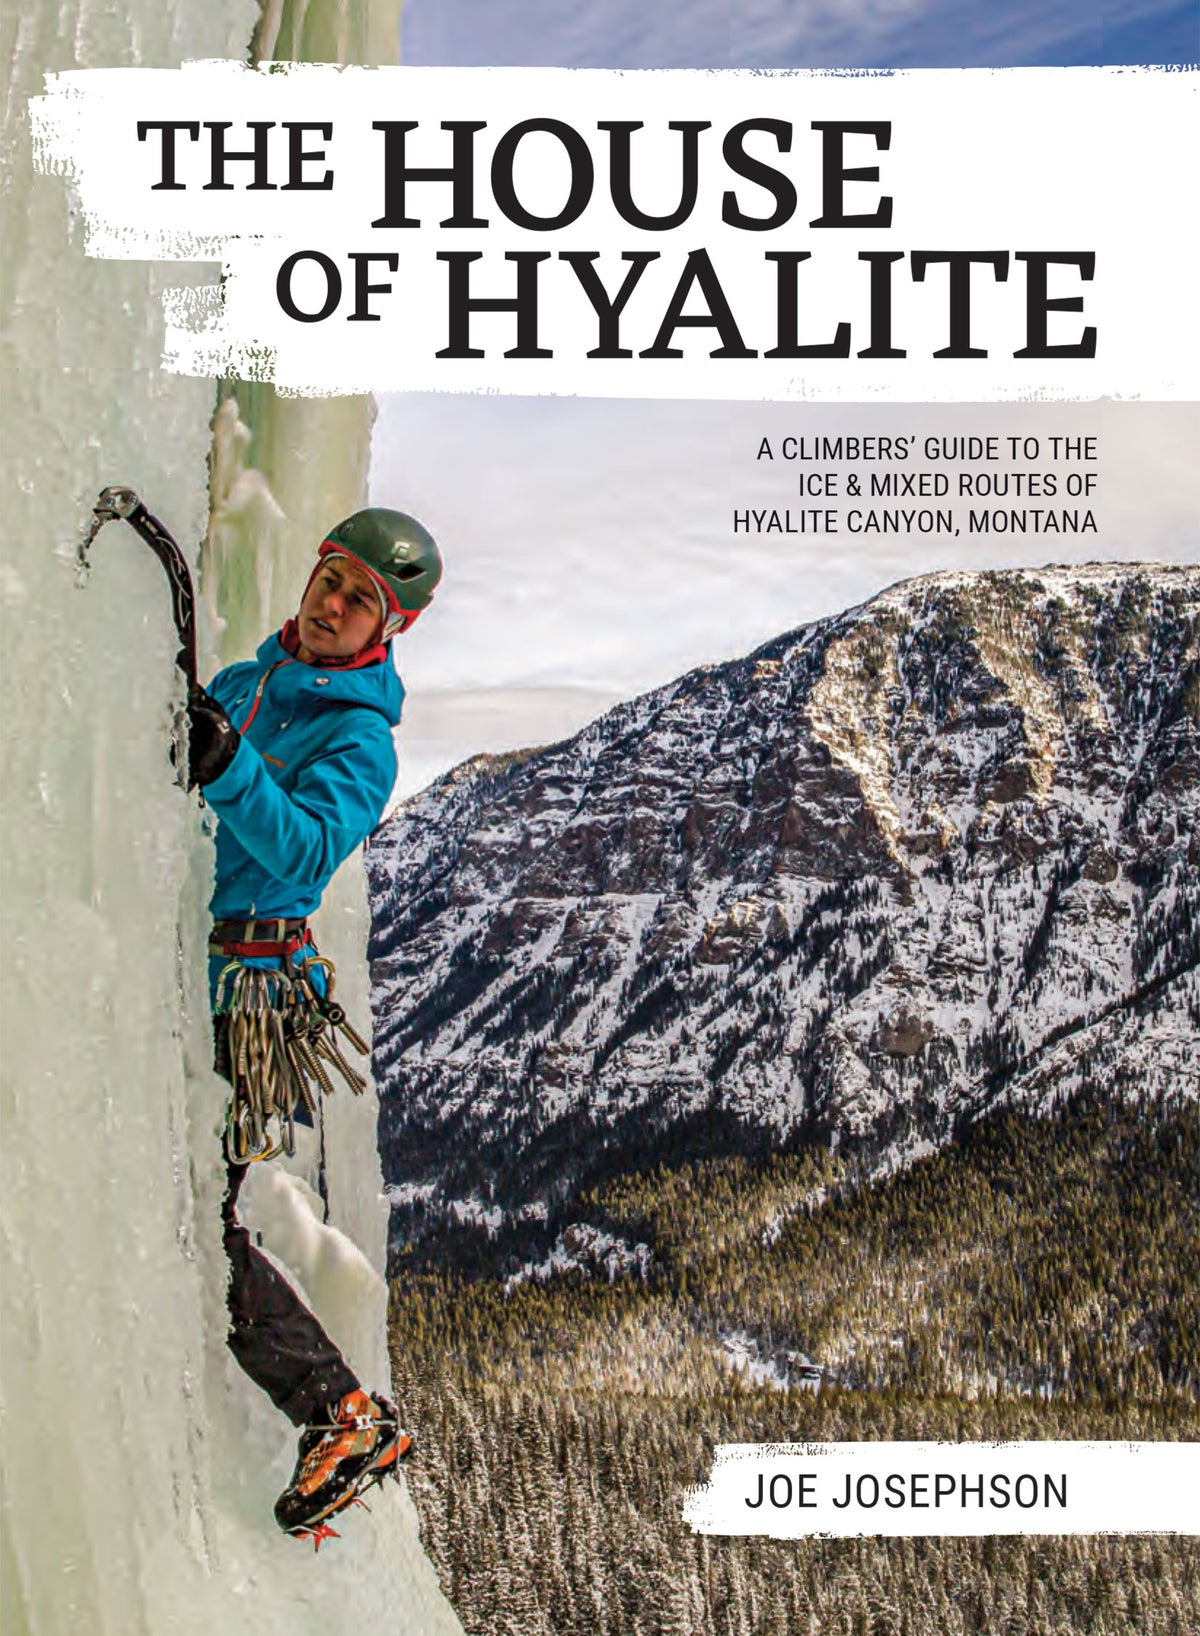 Image of The House of Hyalite